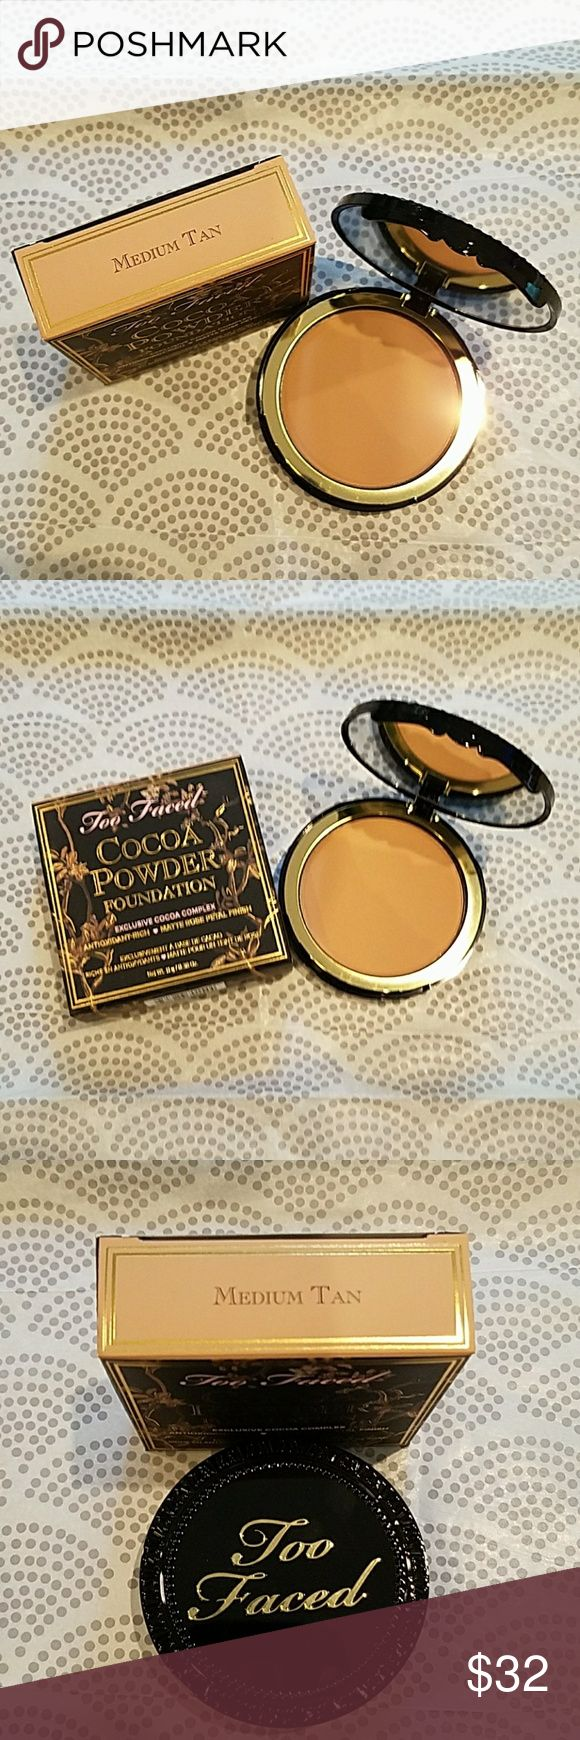 """Too Faced Cocoa Powder Foundation *MEDIUM TAN*A fan fave 5 star rated powder foundation with over 600 reviews on the Too Faced site. Such a great, buildable medium to full coverage foundation. Matte but never dry """"rose petal"""" finish, oil absorbing, and it smells delicious. Diminishes, and won't settle into fine lines and wrinkles. This brand is cruelty freeyay! Too Faced Makeup Foundation"""